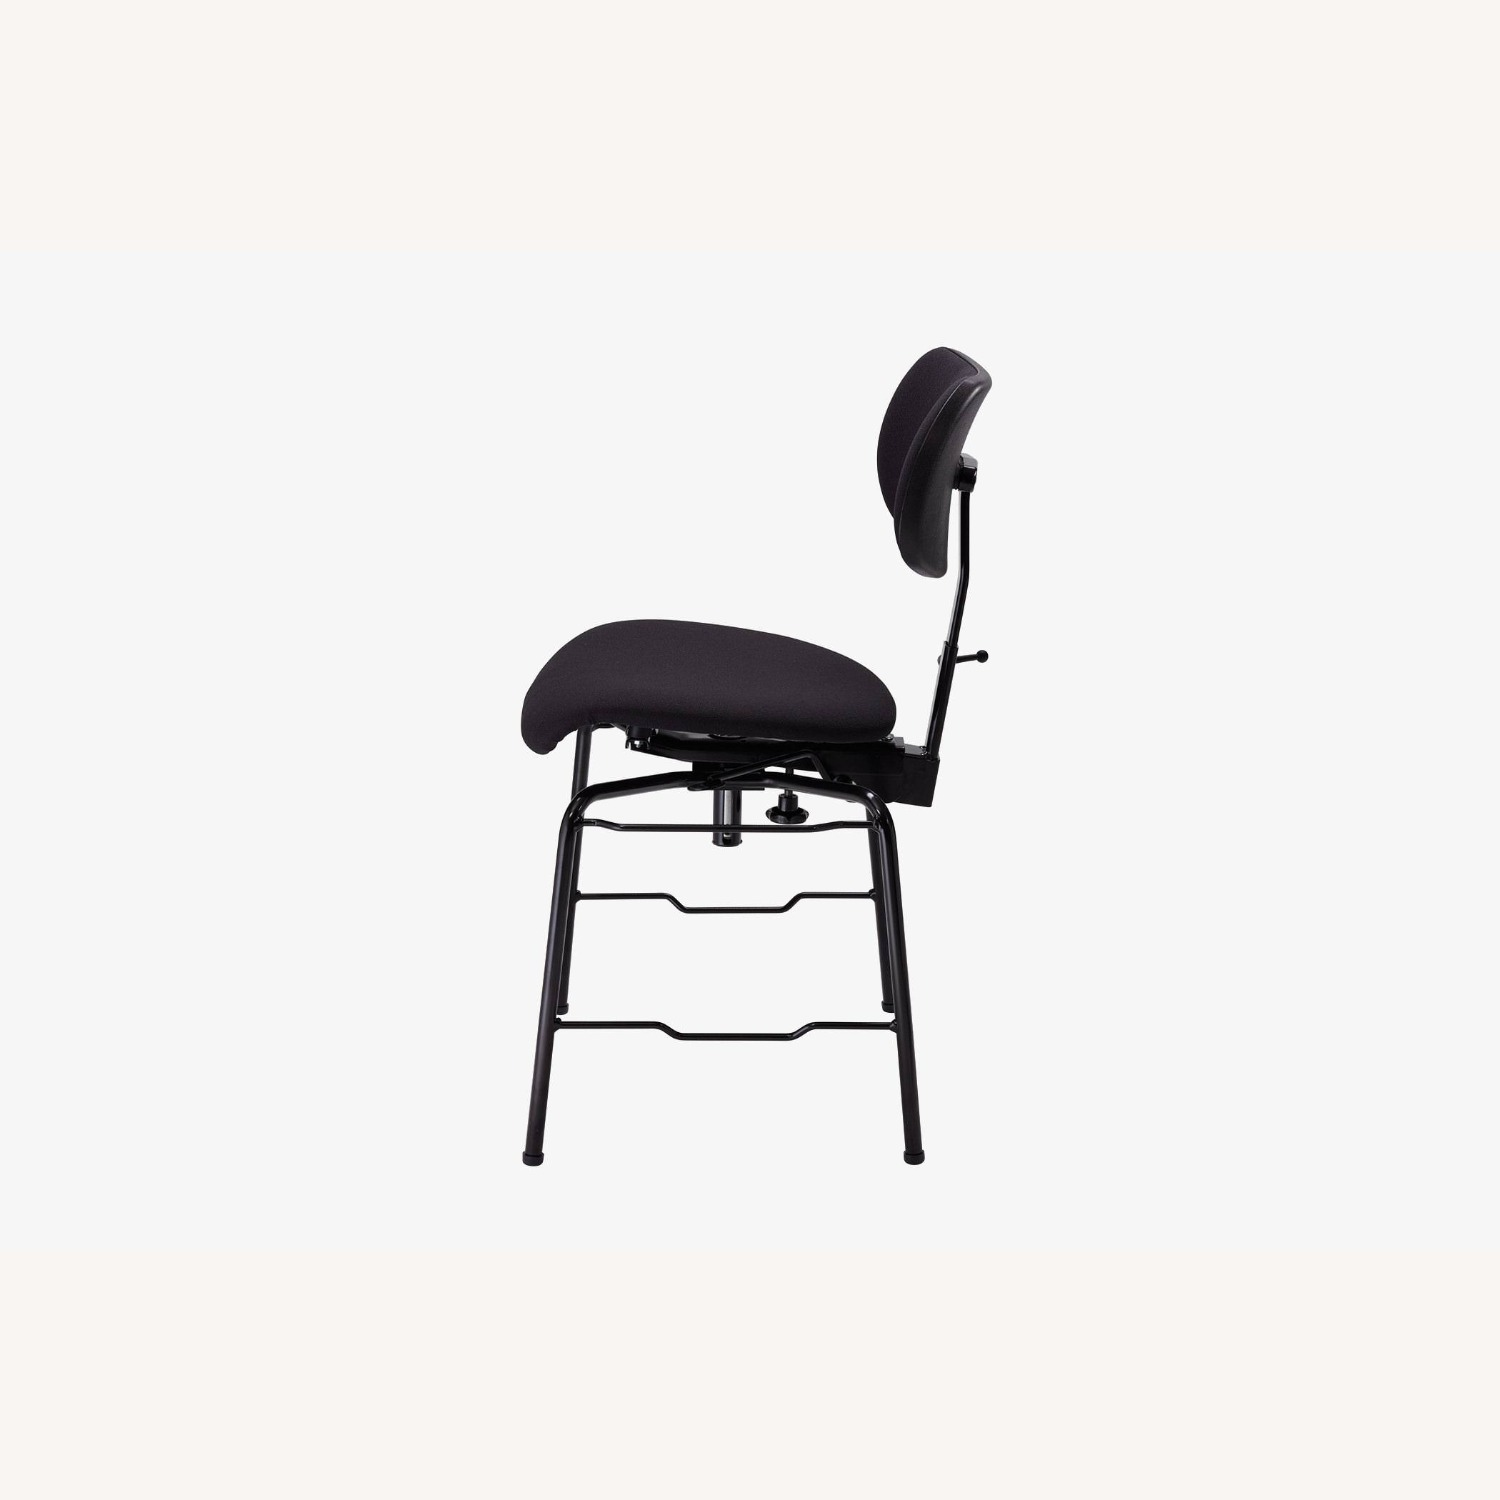 "Wilde + Spieth ""Orchestra"" Chair Black - image-4"